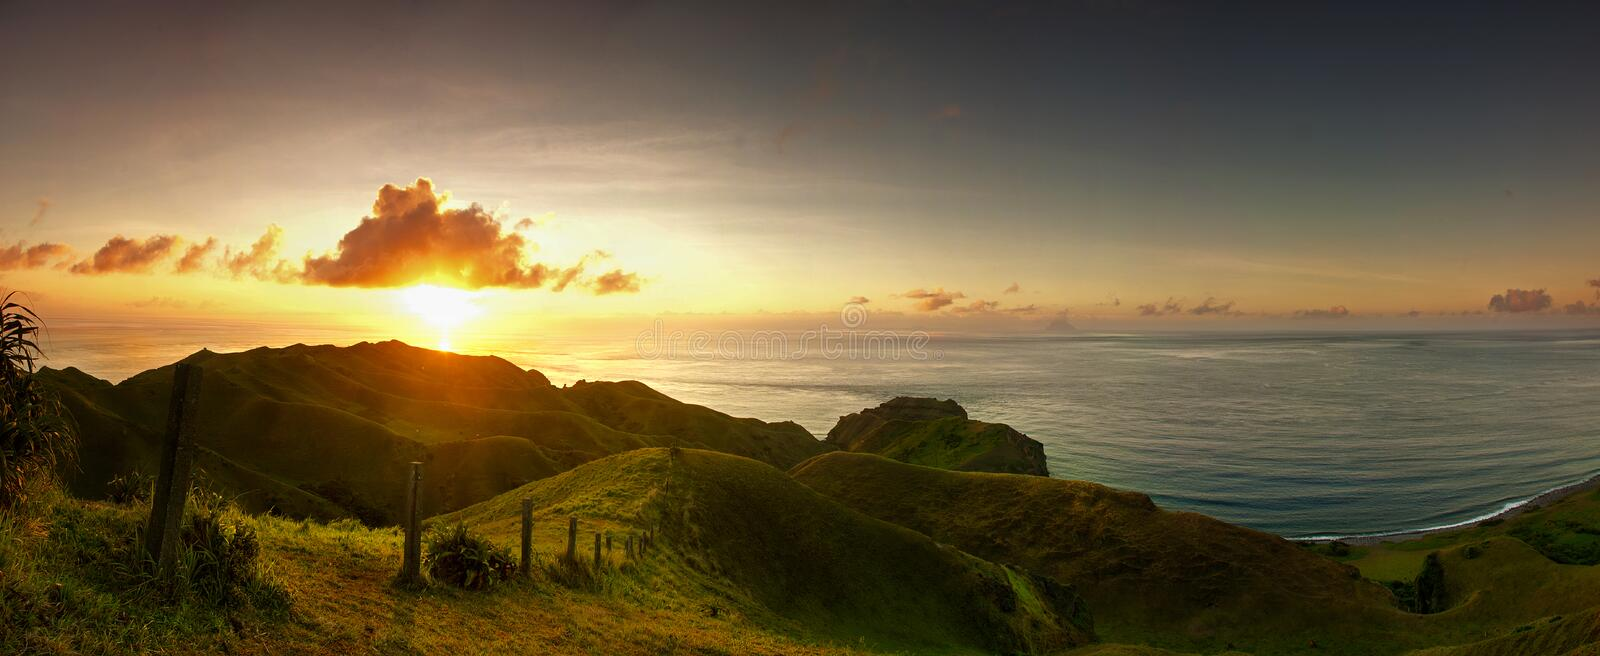 1,120 Batanes Photos - Free & Royalty-Free Stock Photos from Dreamstime